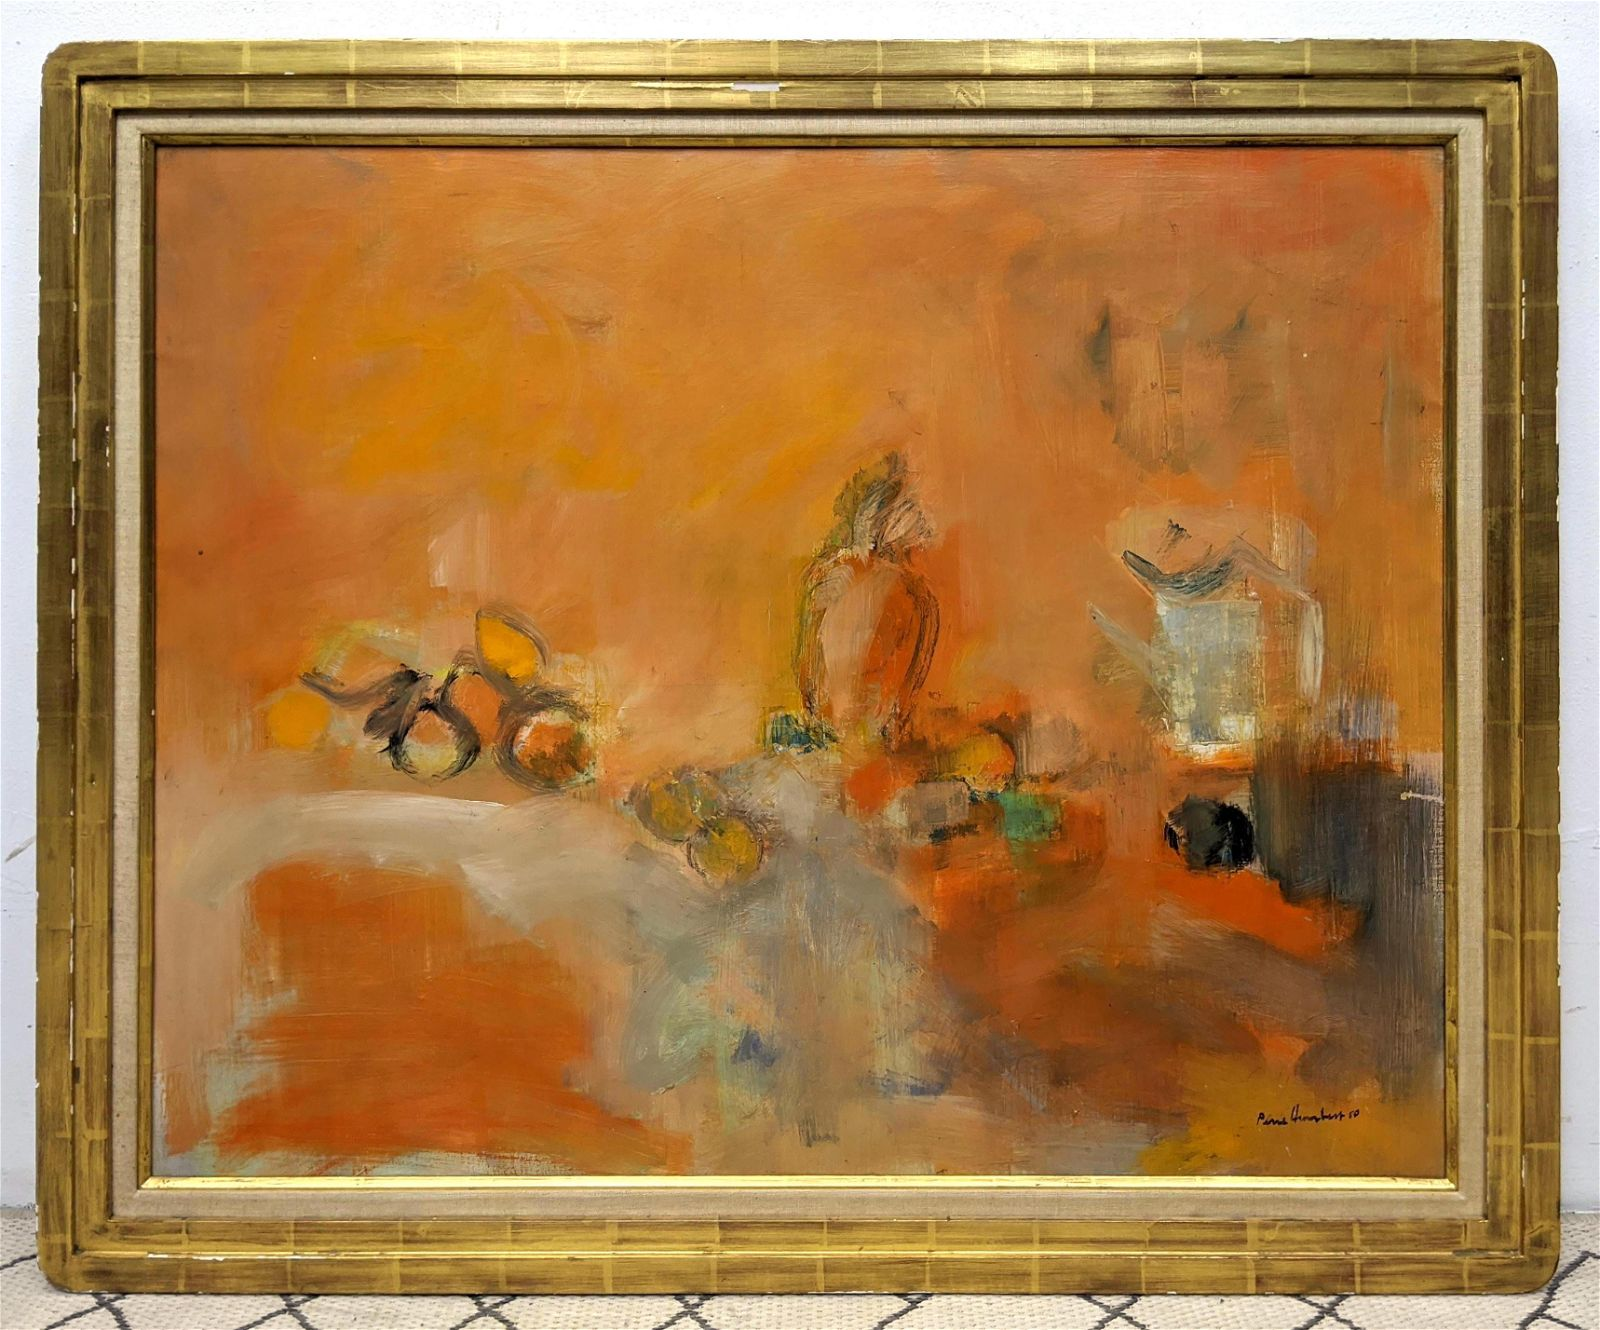 PIERRE HUMBERT Oil Painting on Canvas. Abstract Modern